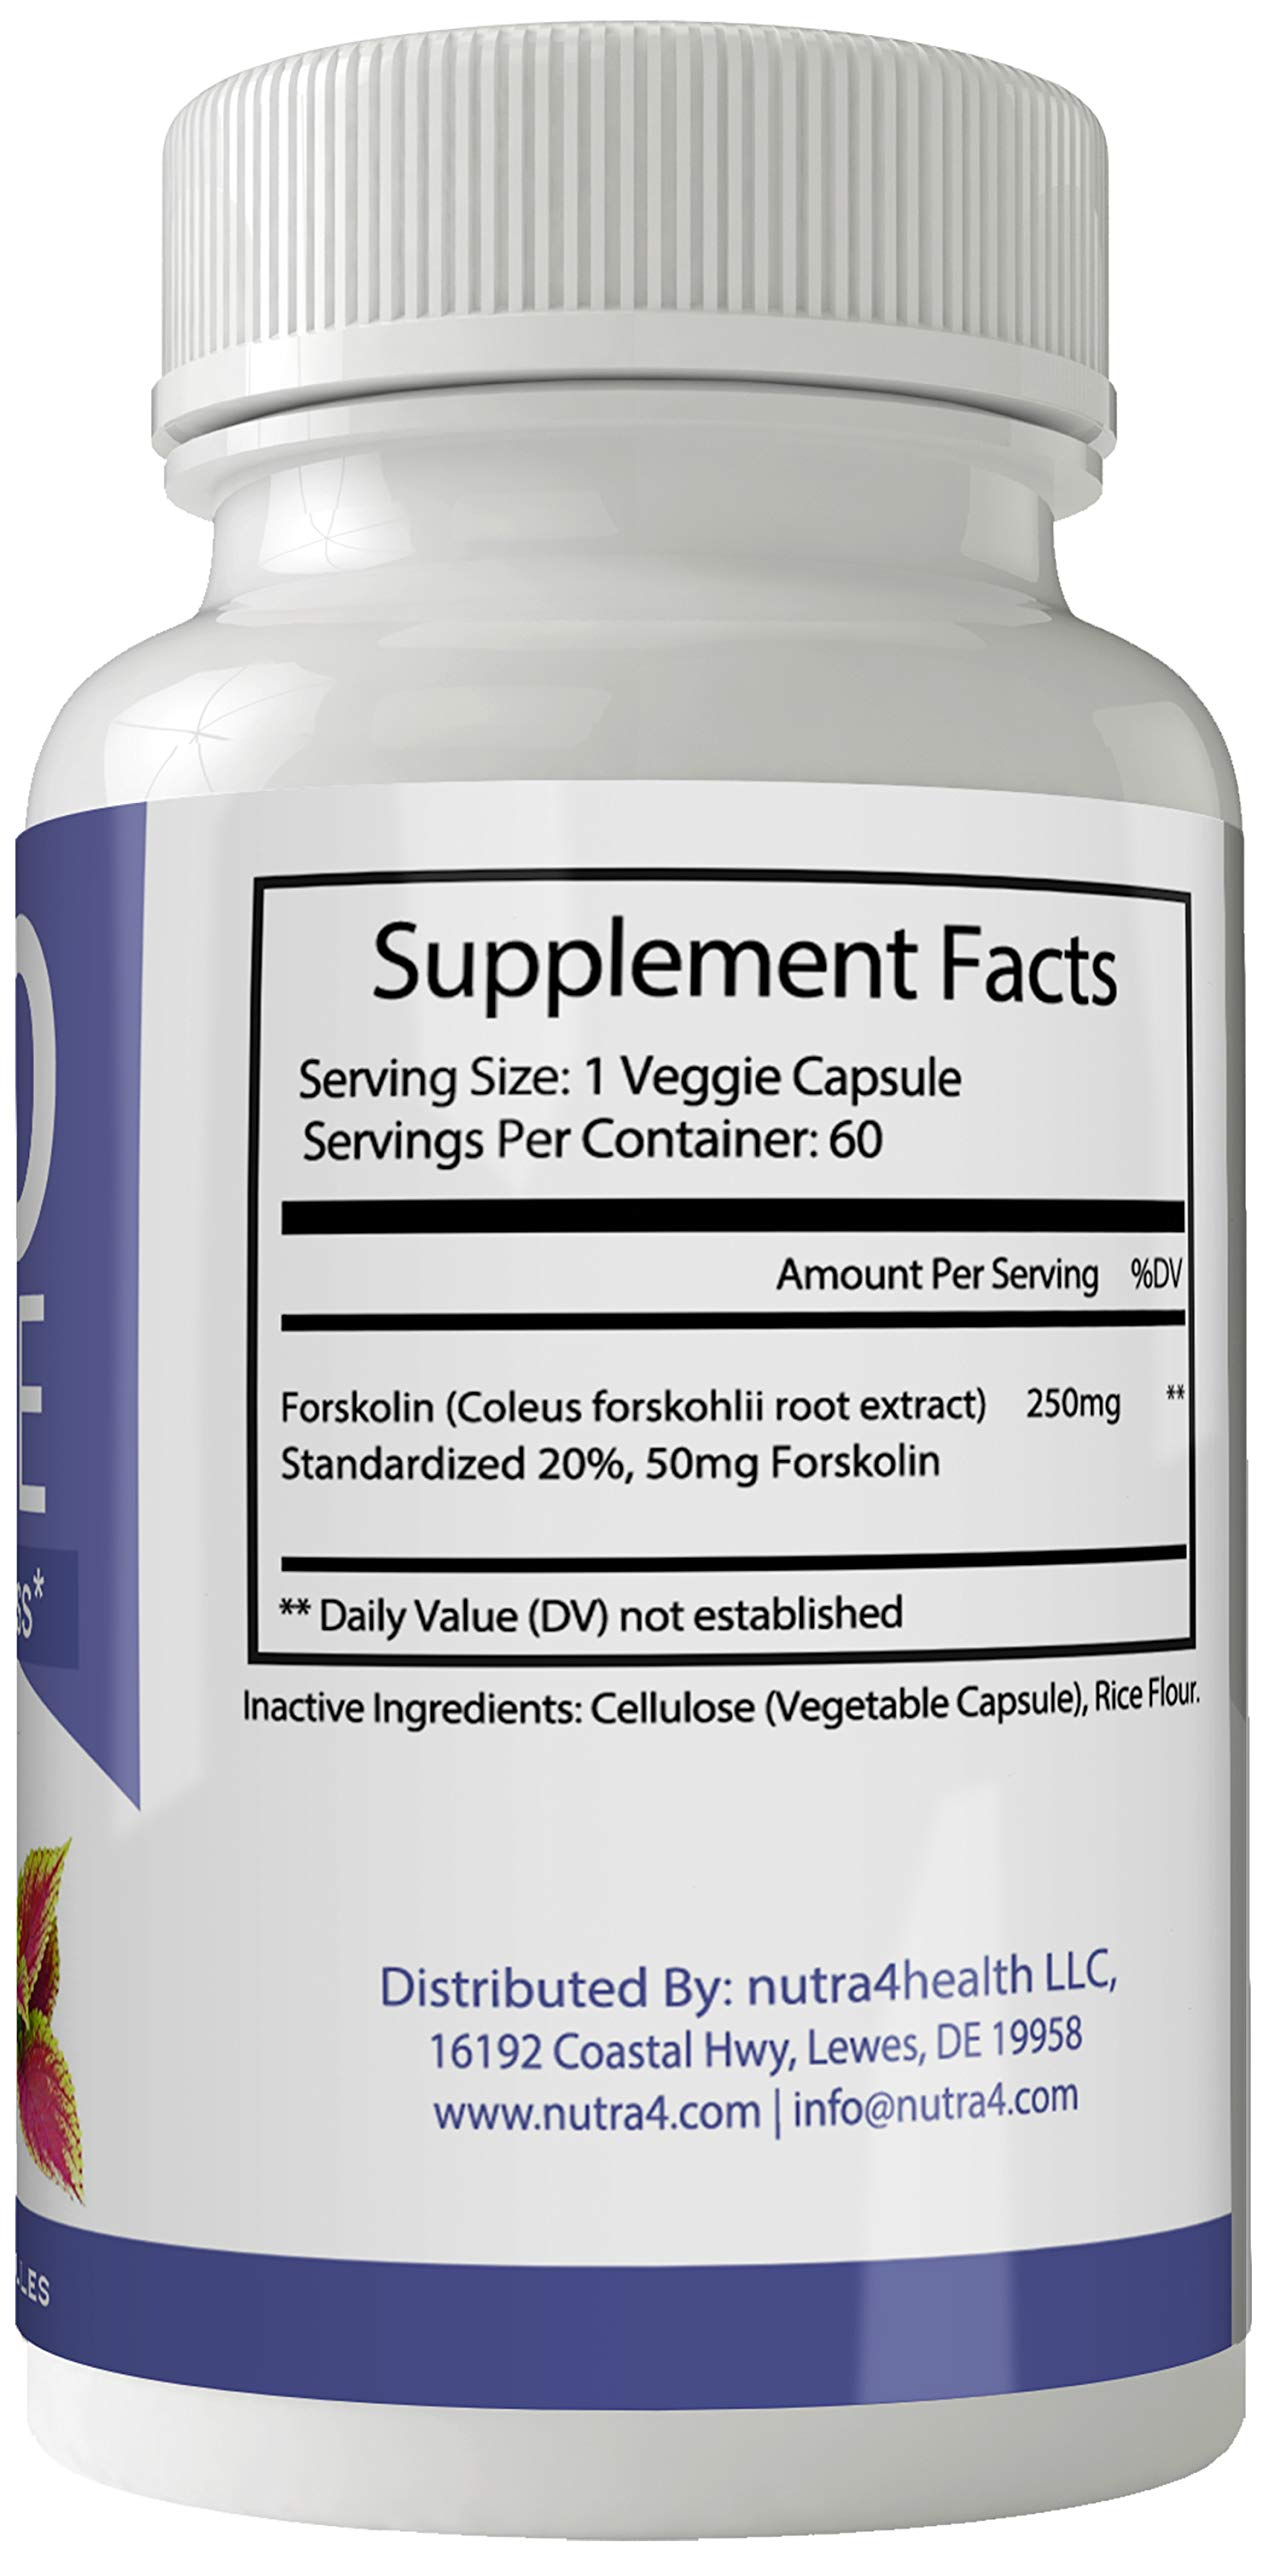 Keto Absolute Supplement Forskolin for Weight Loss Capsules with Natural High Quality Pure Forskolin Extract Diet Pills by nutra4health LLC (Image #2)